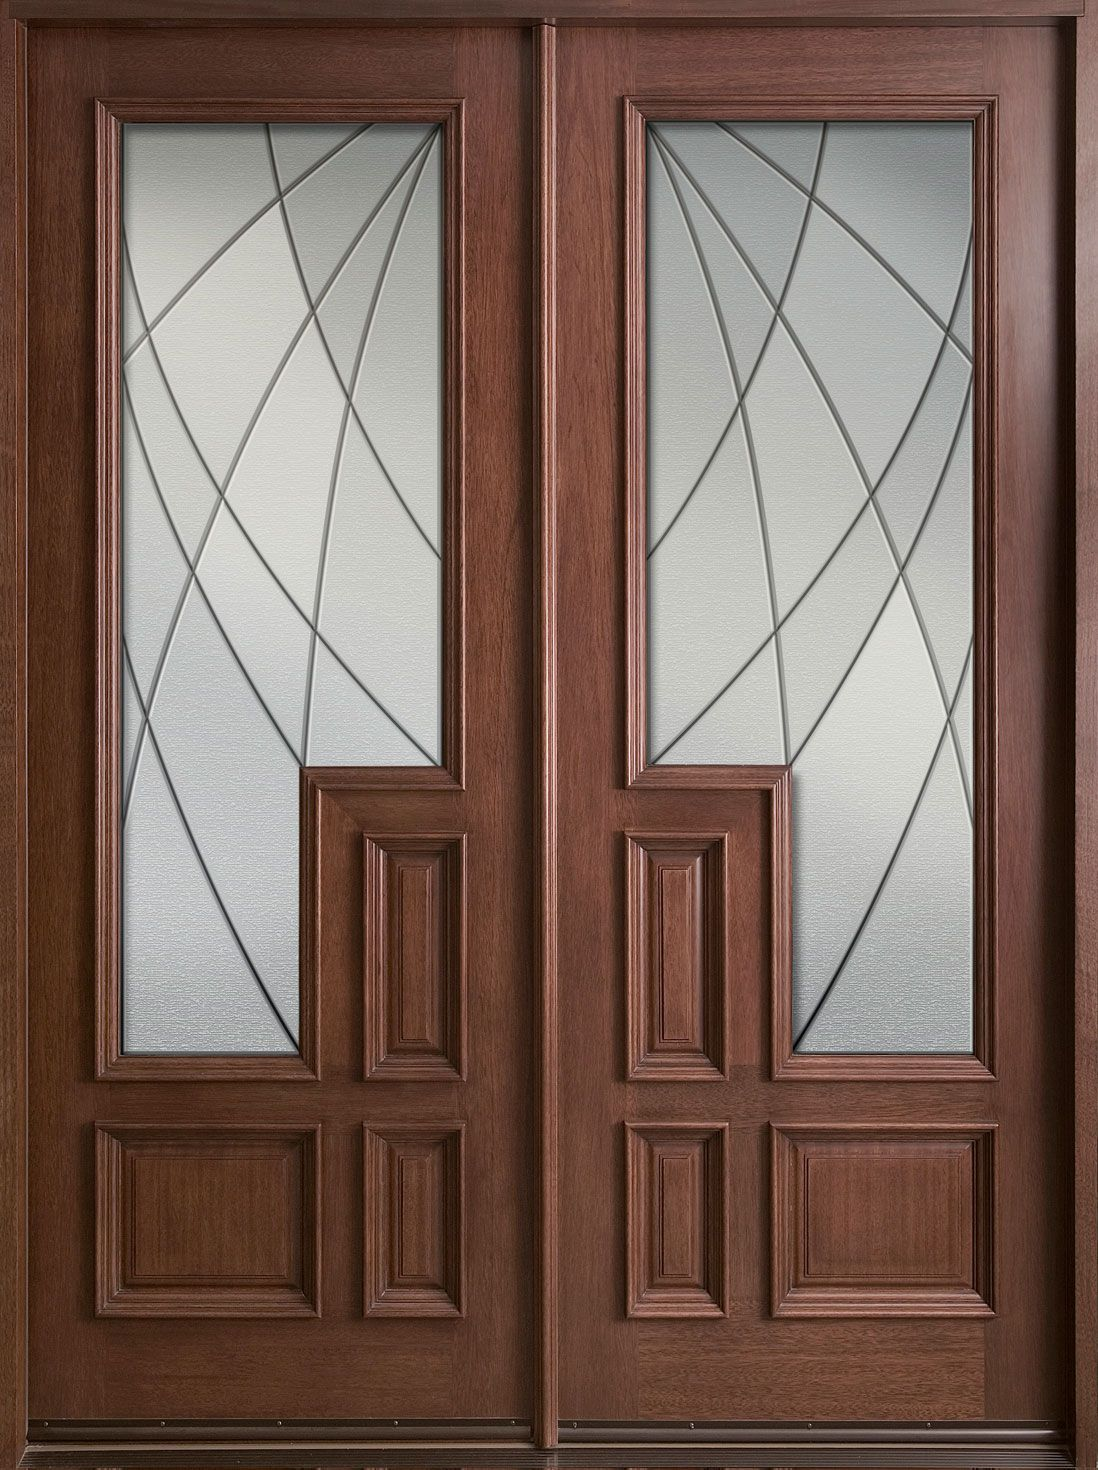 Inspiring double fiberglass entry door as furniture for for Wooden doors for outside